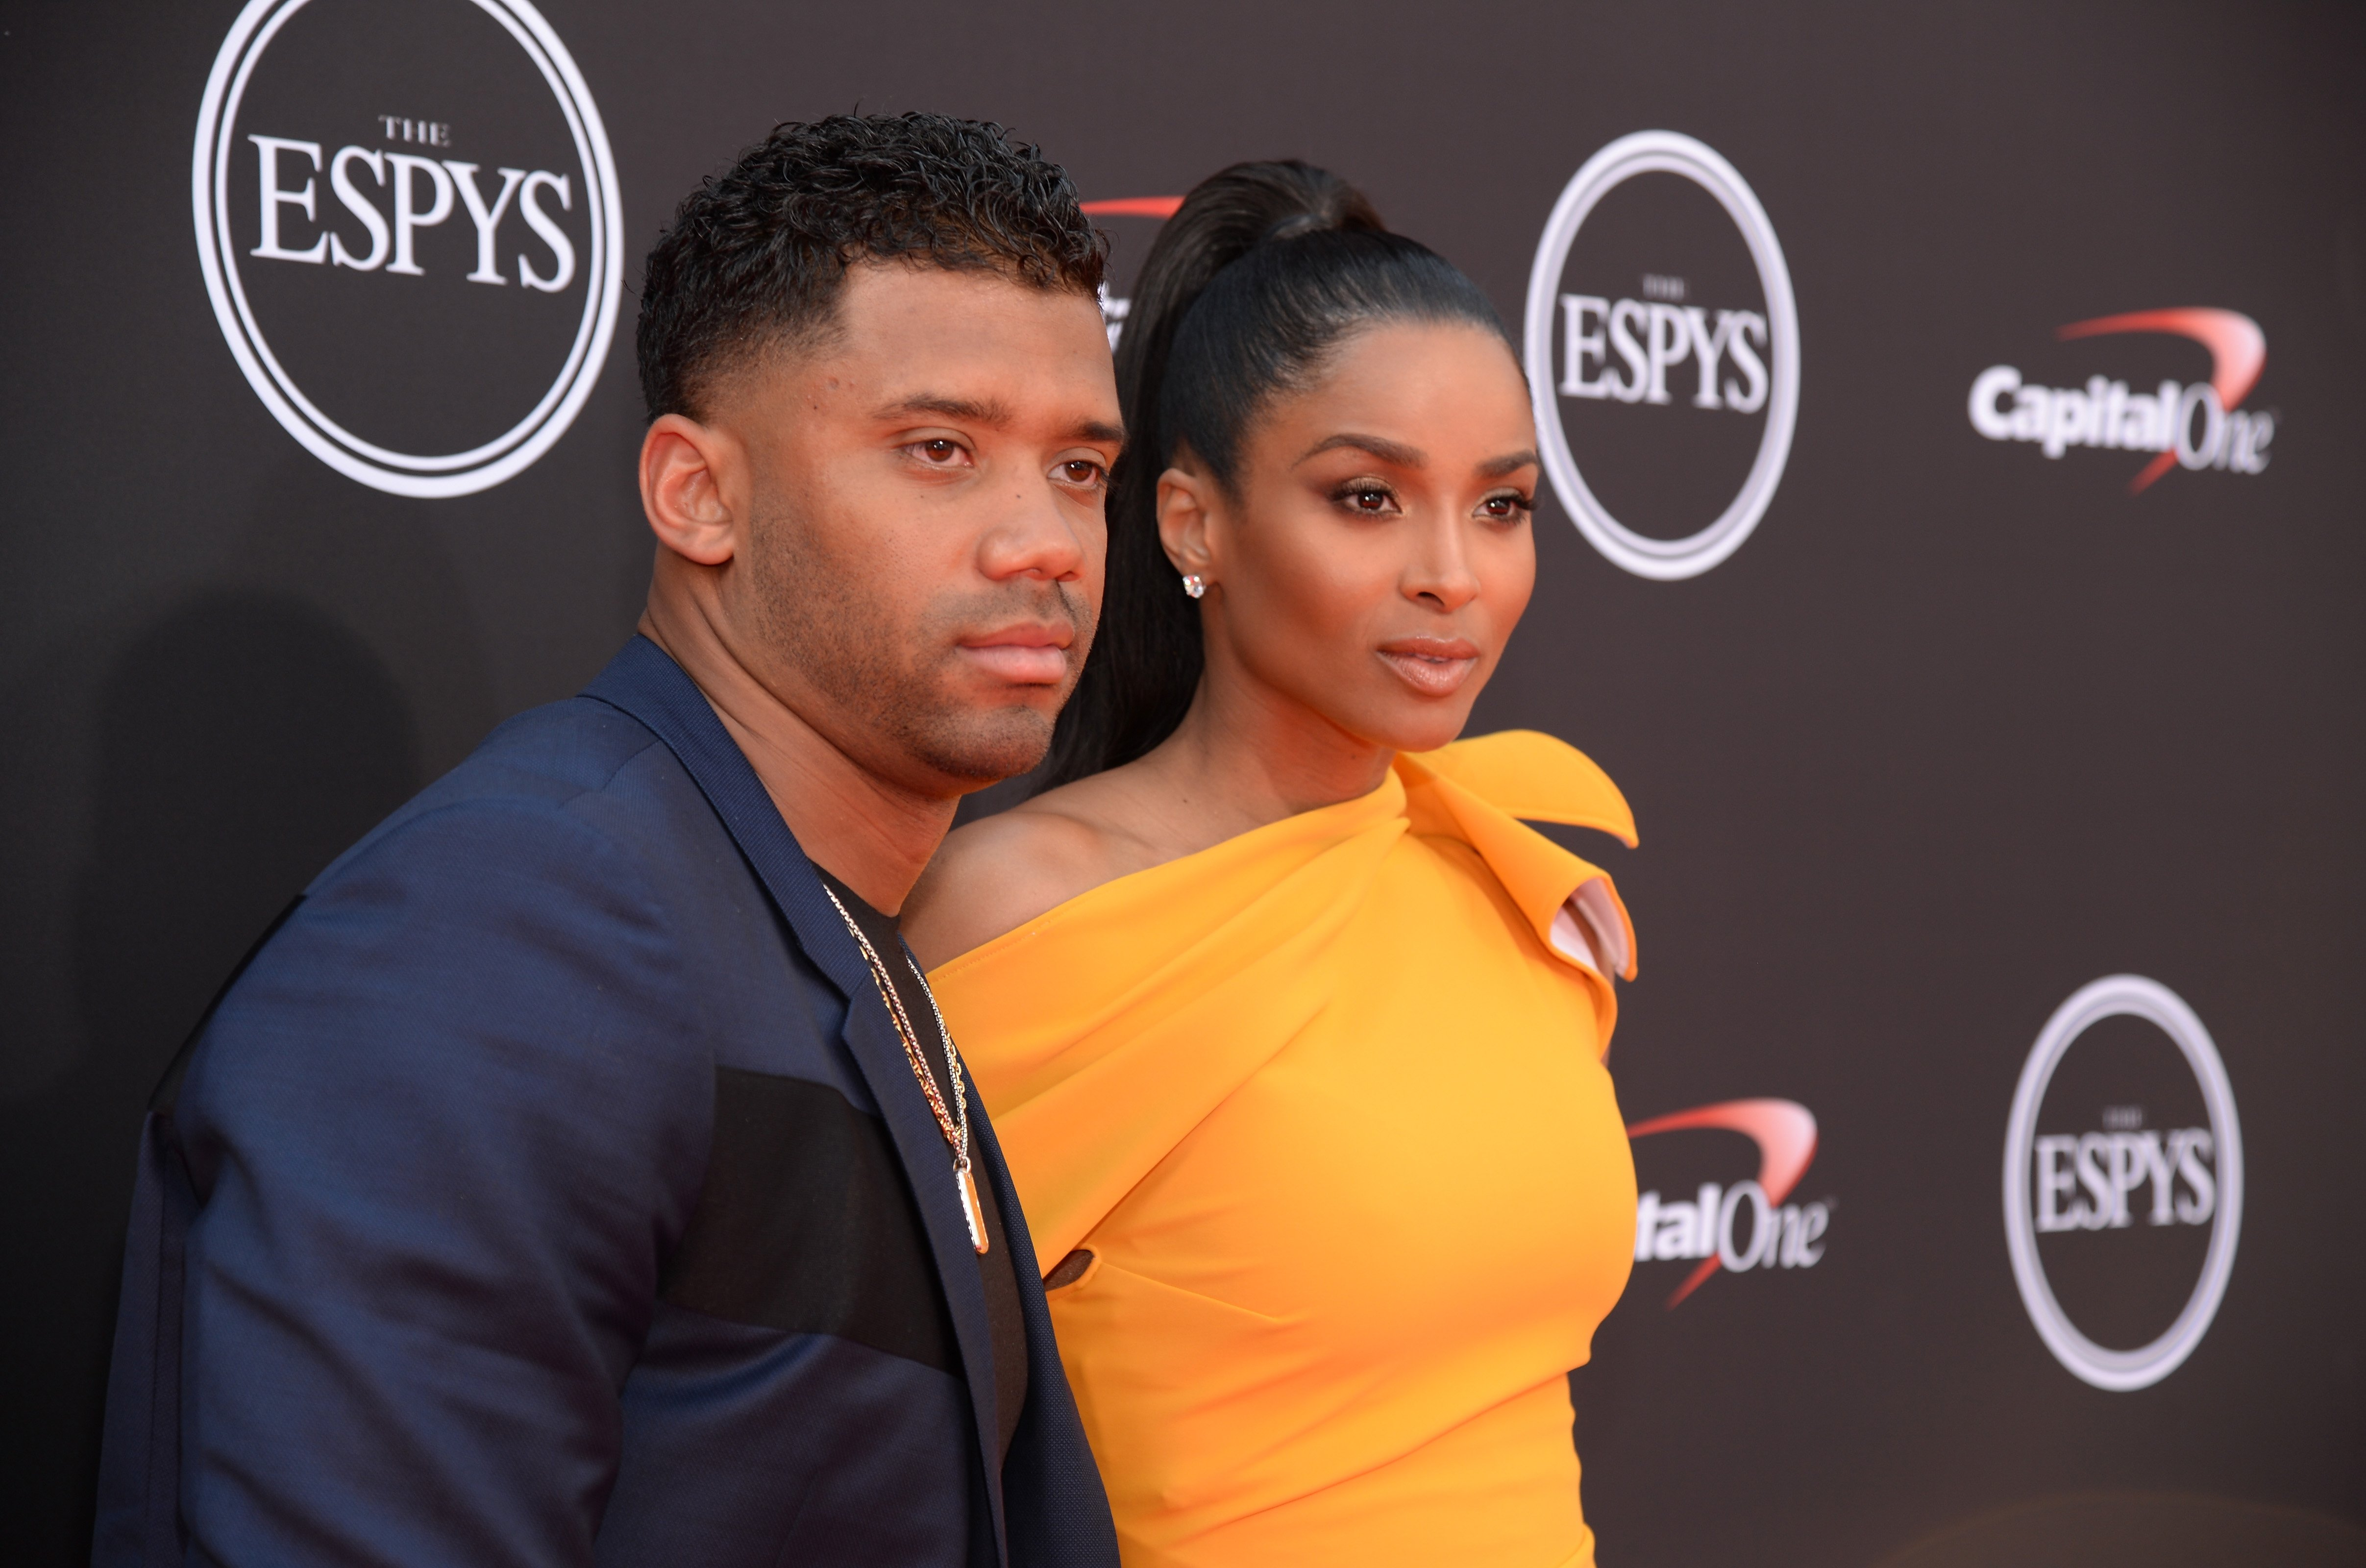 Ciara and Russell Wilson arrives at the ESPY Awards Red Carpet Show in Los Angeles, California on July 18, 2018. | Photo: Getty Images